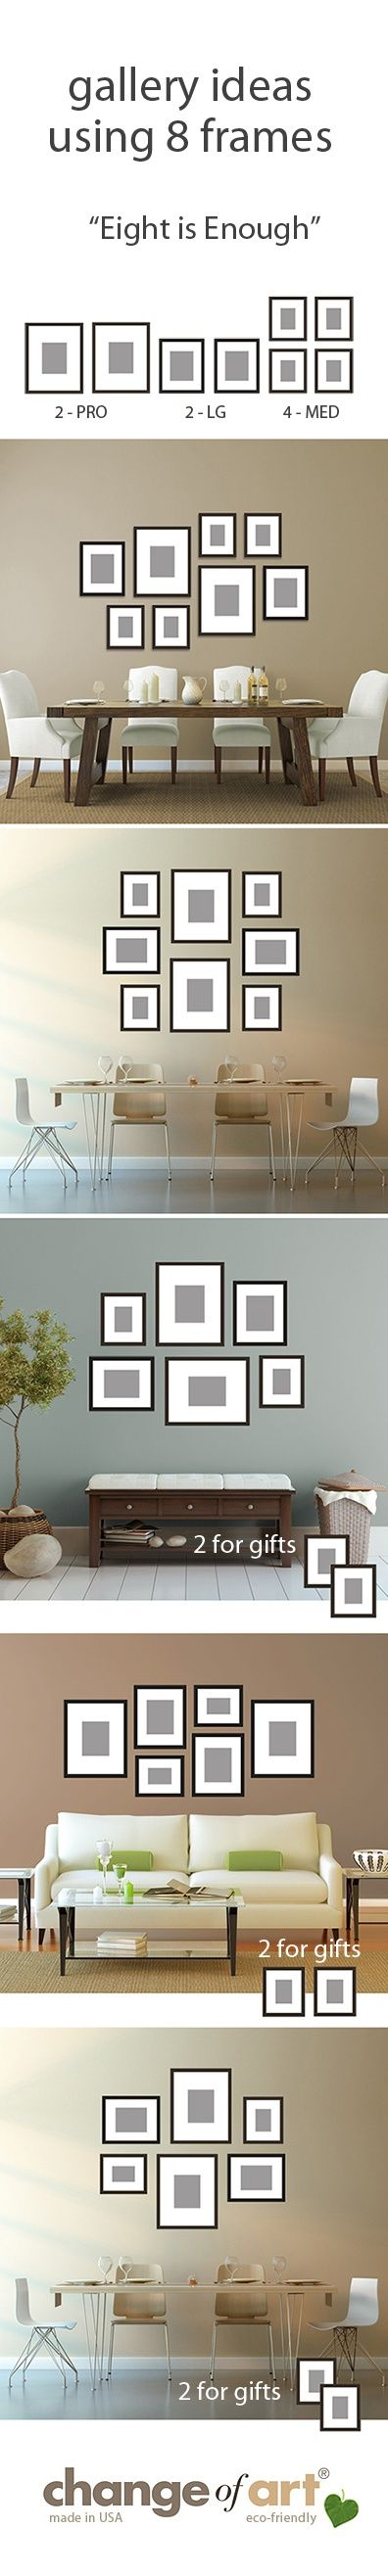 """Just a few #gallery wall ideas for Change of Art's """"Eight is Enough"""" gallery grouping of 8 #GalleryFrames. Every frame comes with its own templates, so hanging's a piece of cake. Nice and flexible - to suit your #home decor."""